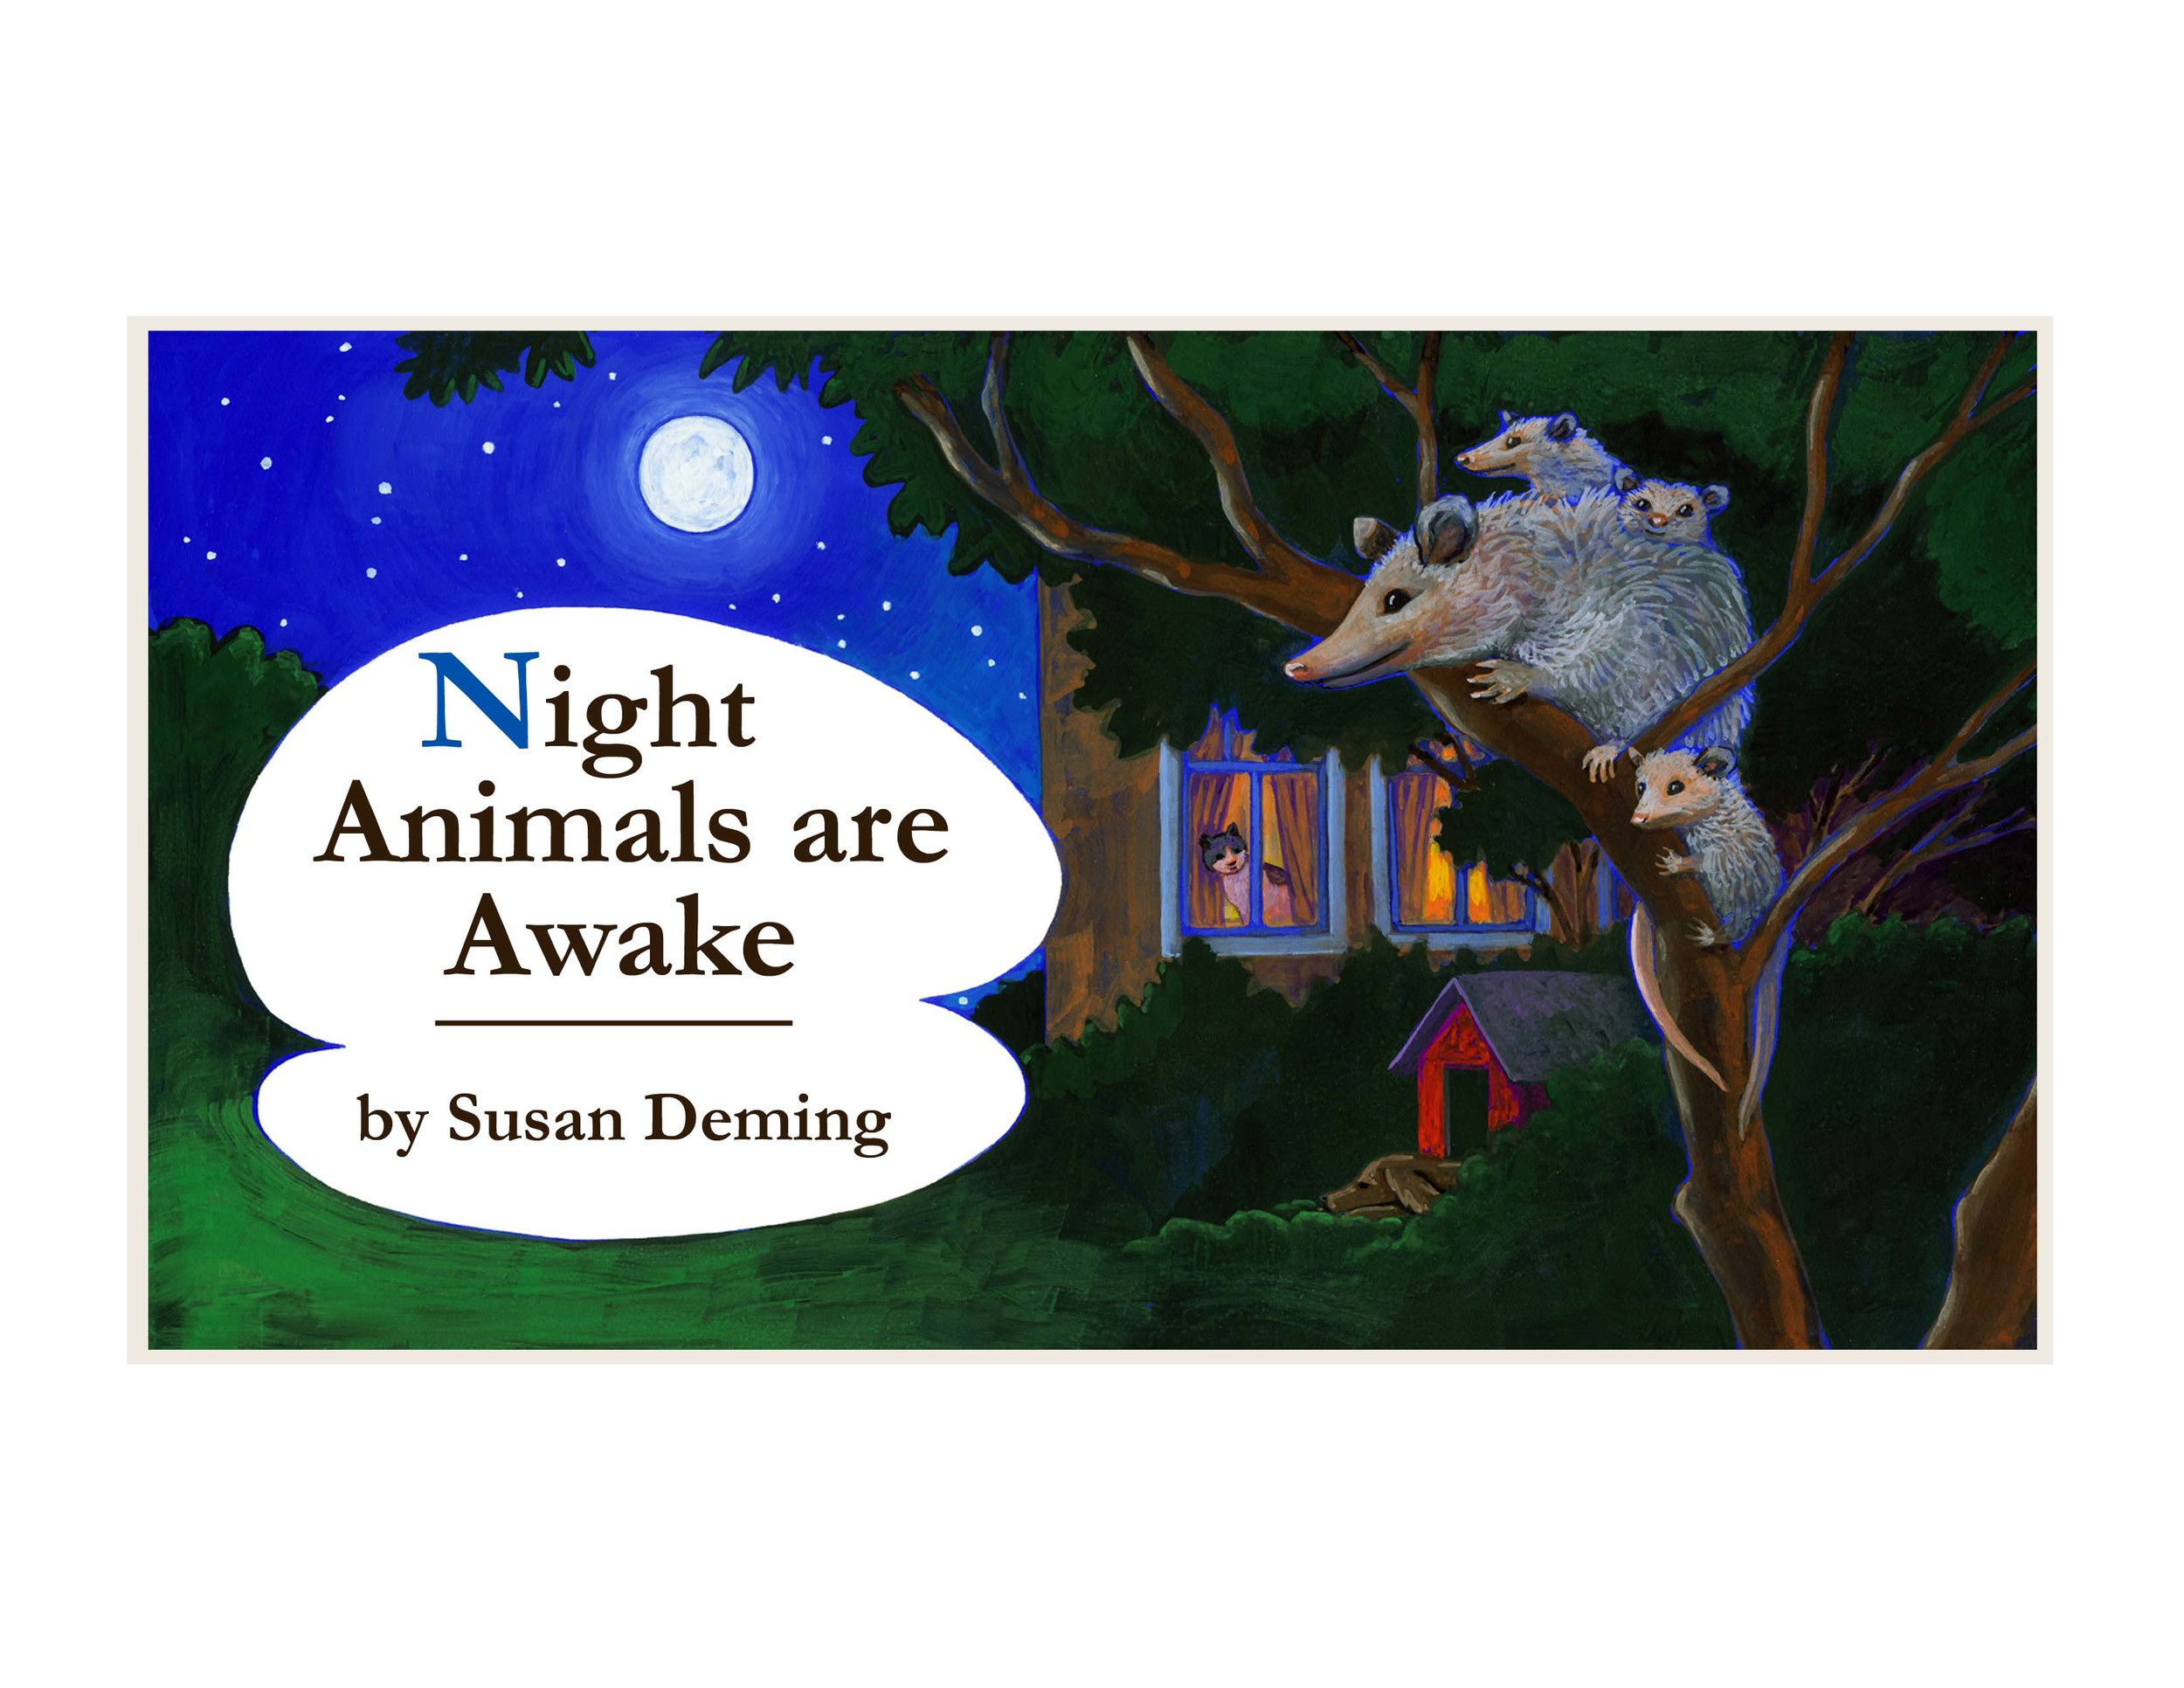 night animals book front cover 2.jpg